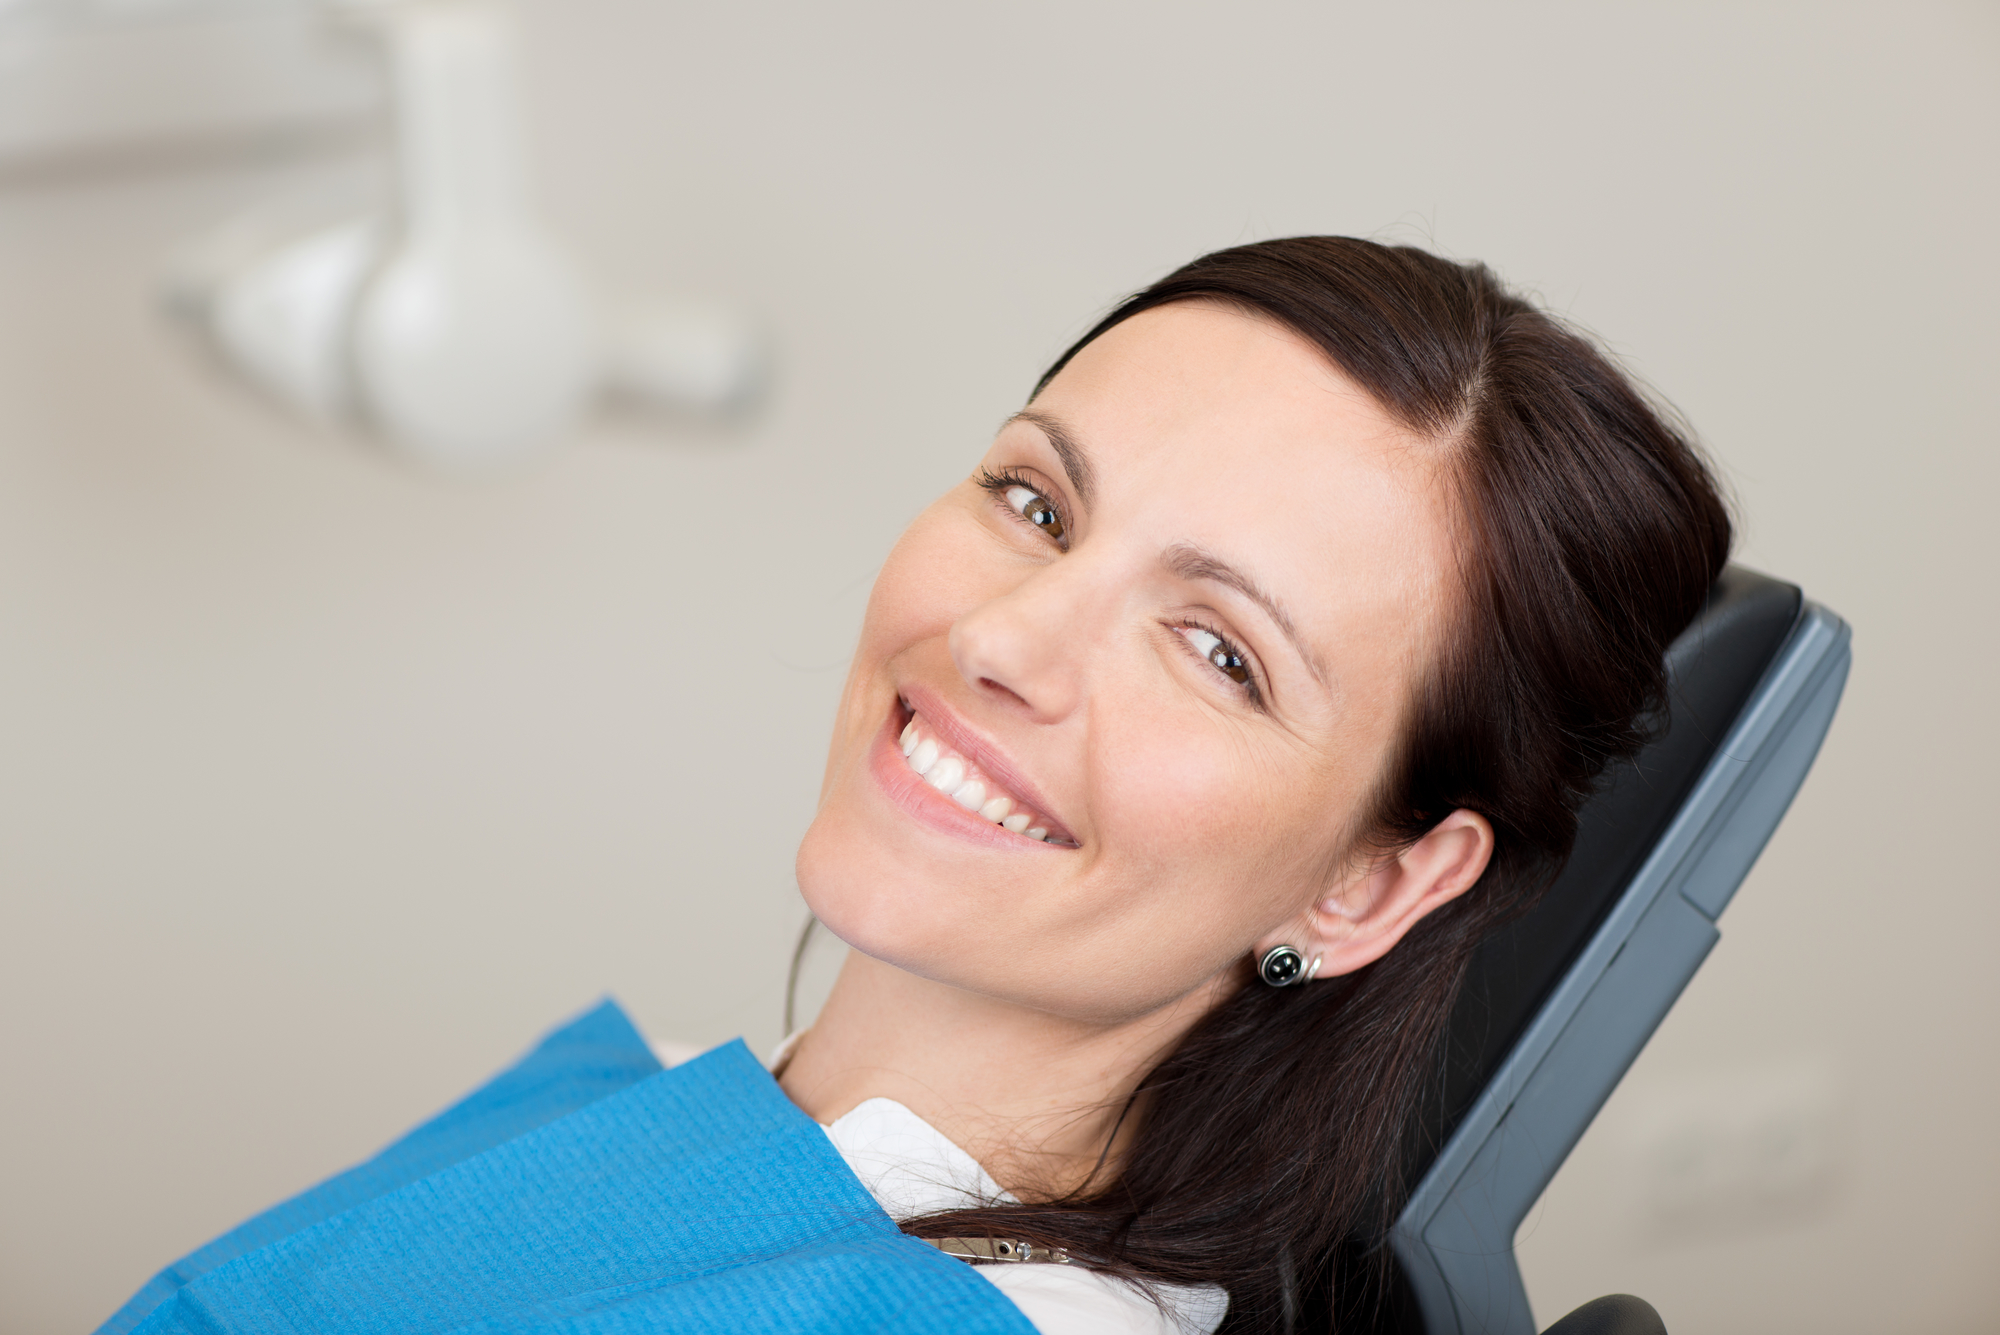 who offers an oral surgeon pembroke pines?